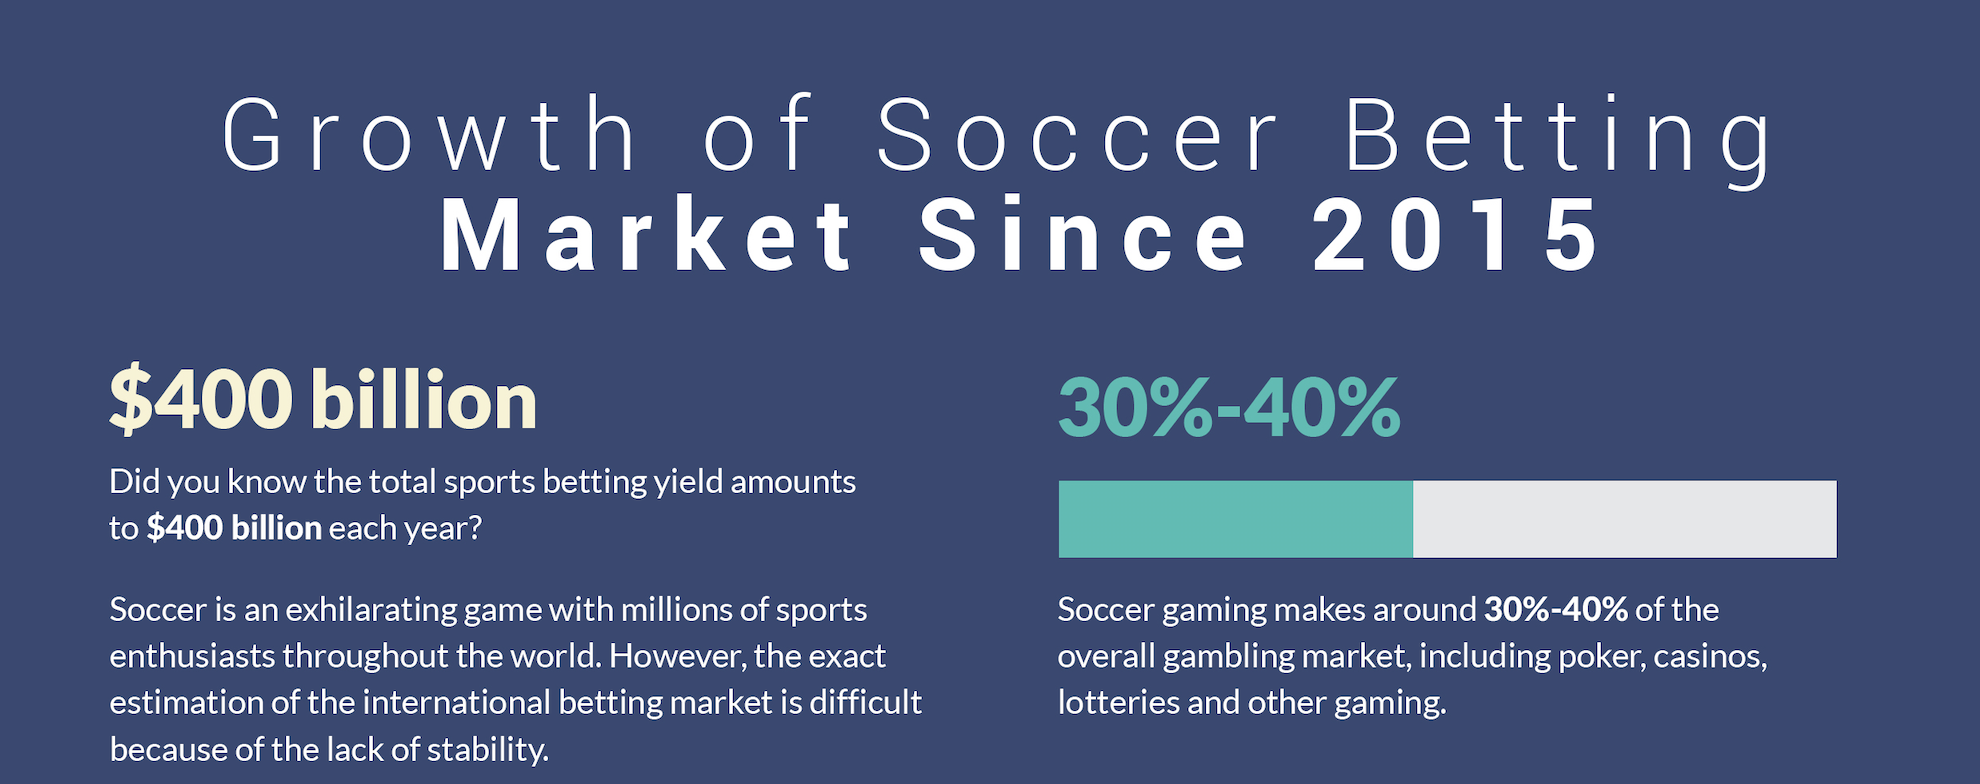 [Infographic] Growth of Soccer Betting Market Since 2015